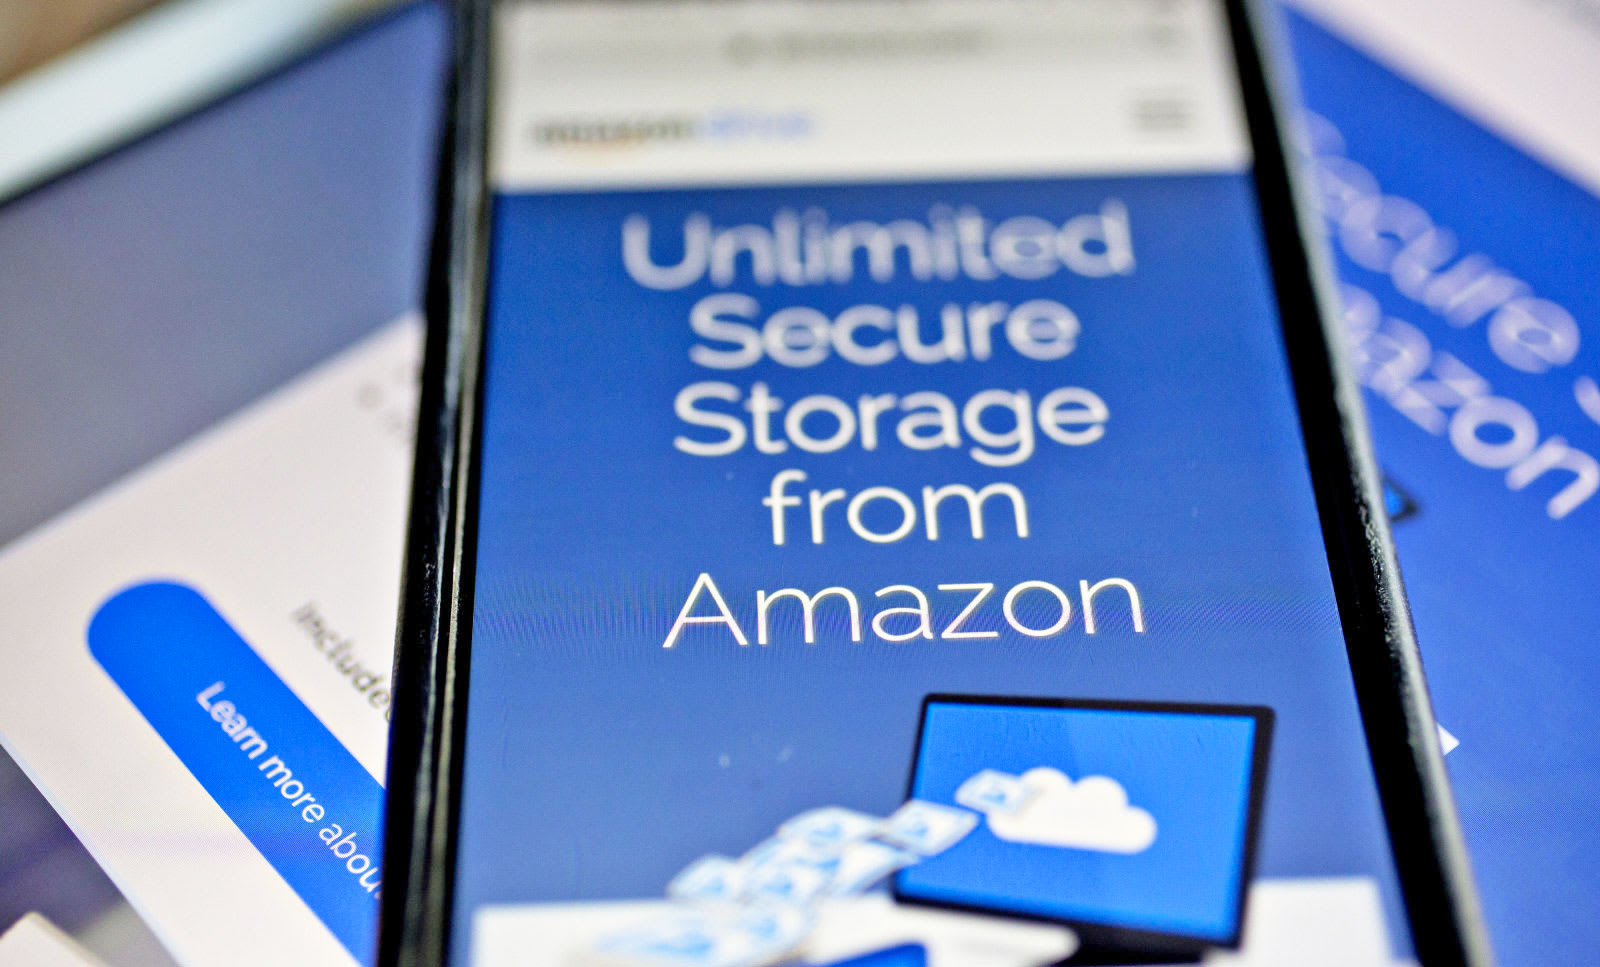 Amazon drops its unlimited cloud storage plan